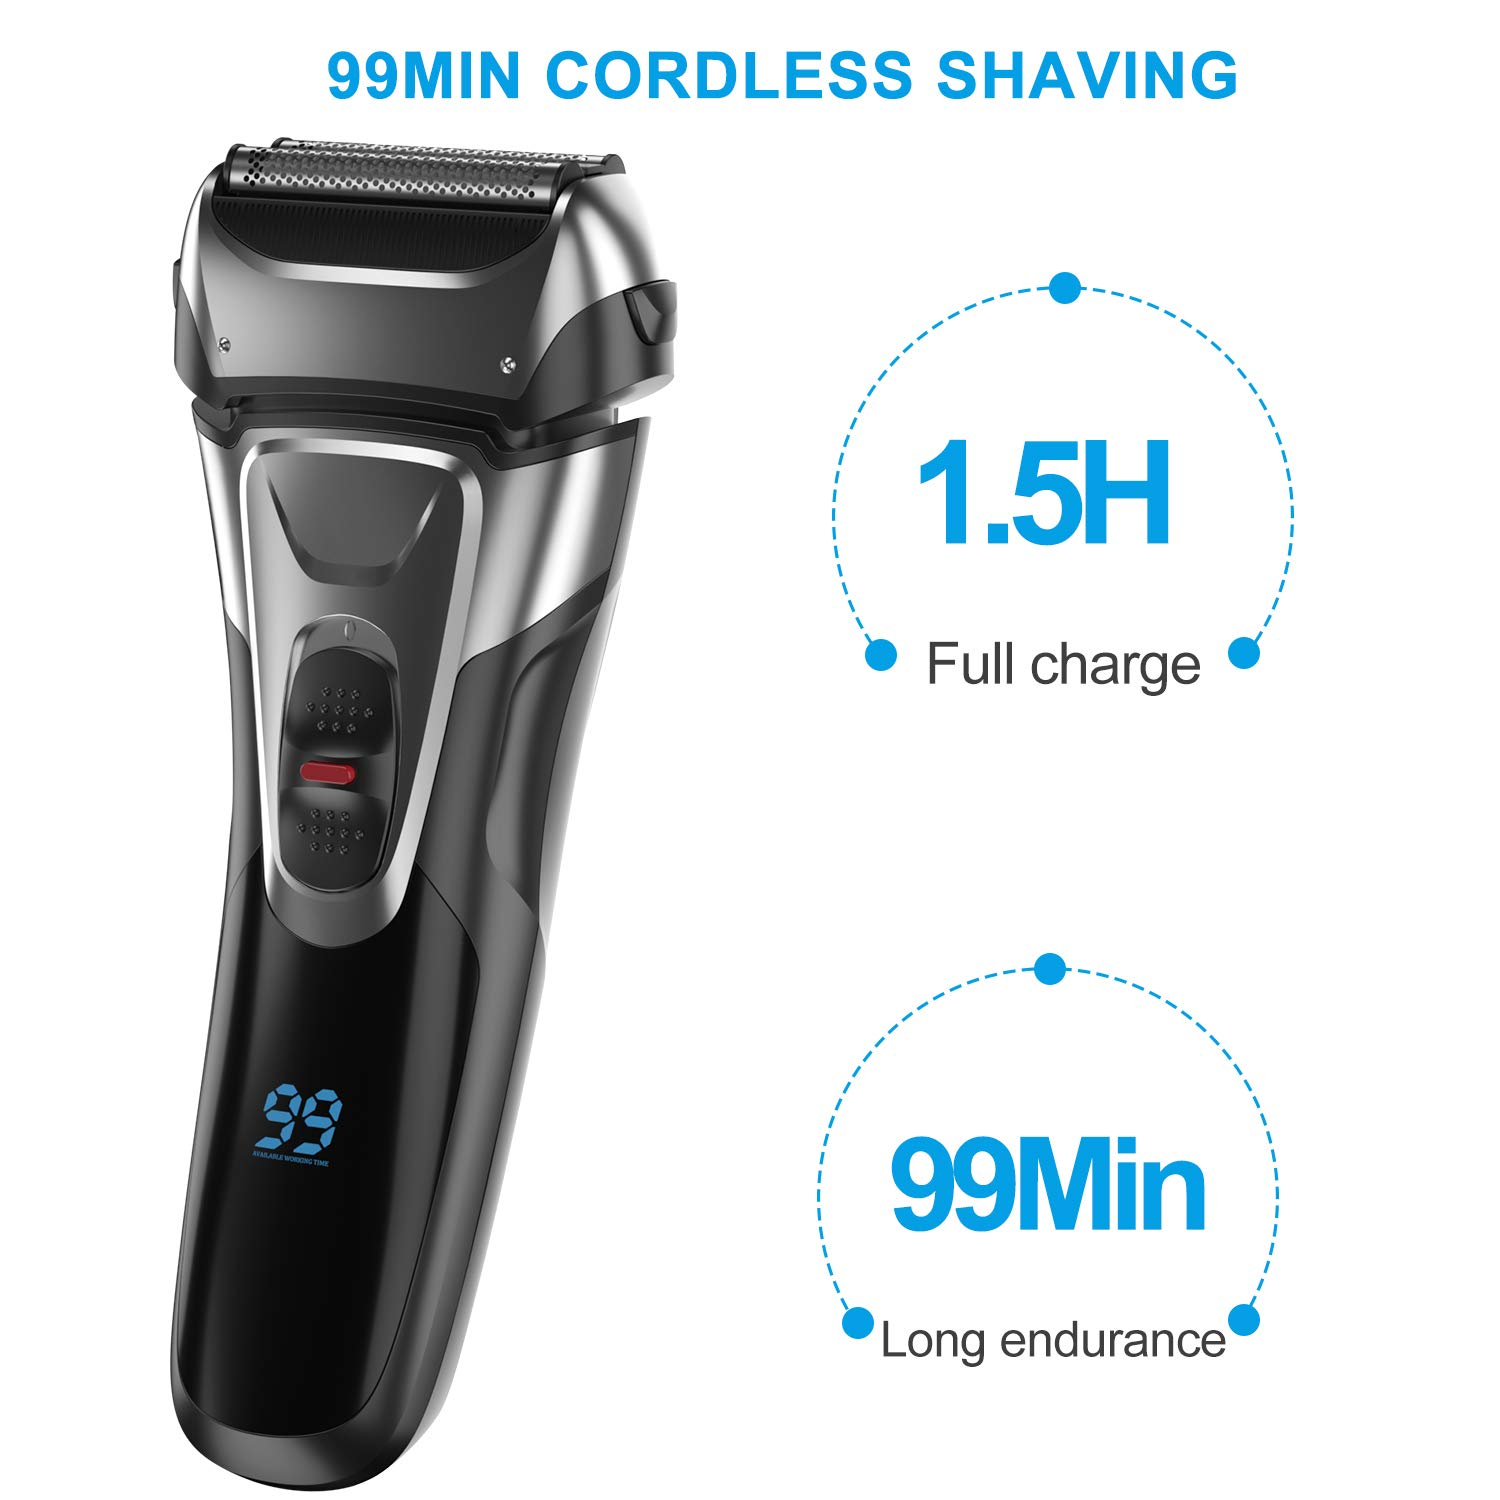 Electric Shaver with Trimmer for Men, IPX7 Waterproof Wet Dry Cordless Razor, Charge 1.5H Work 99 Mins, Plug and Play, USB Quick Rechargeable LCD Display Battery